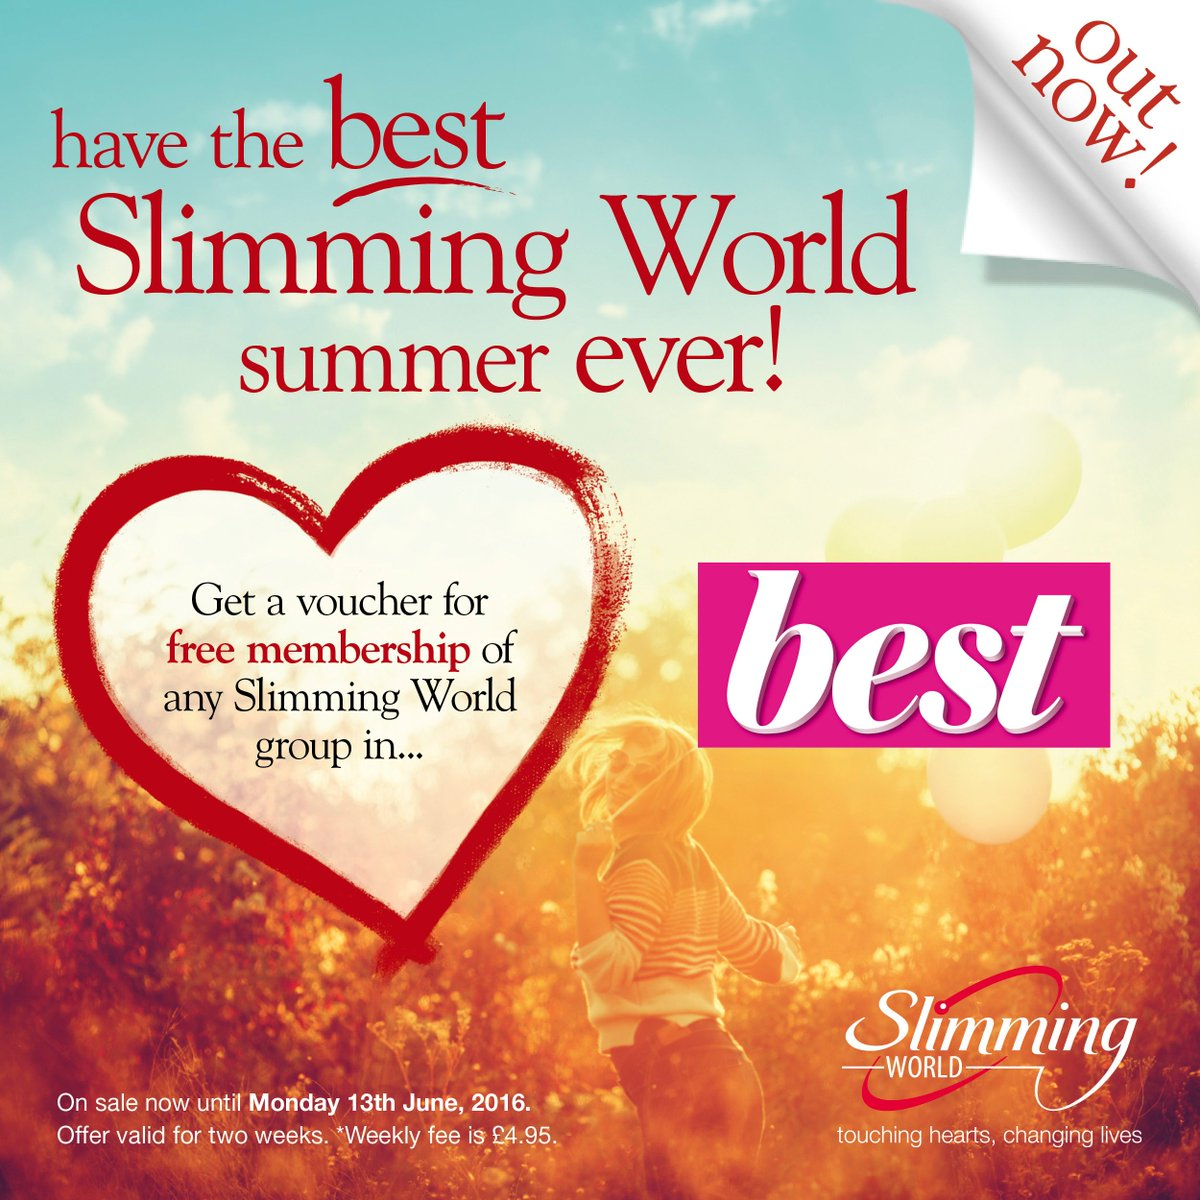 Toni Slimming World T Slimmingworld Twitter